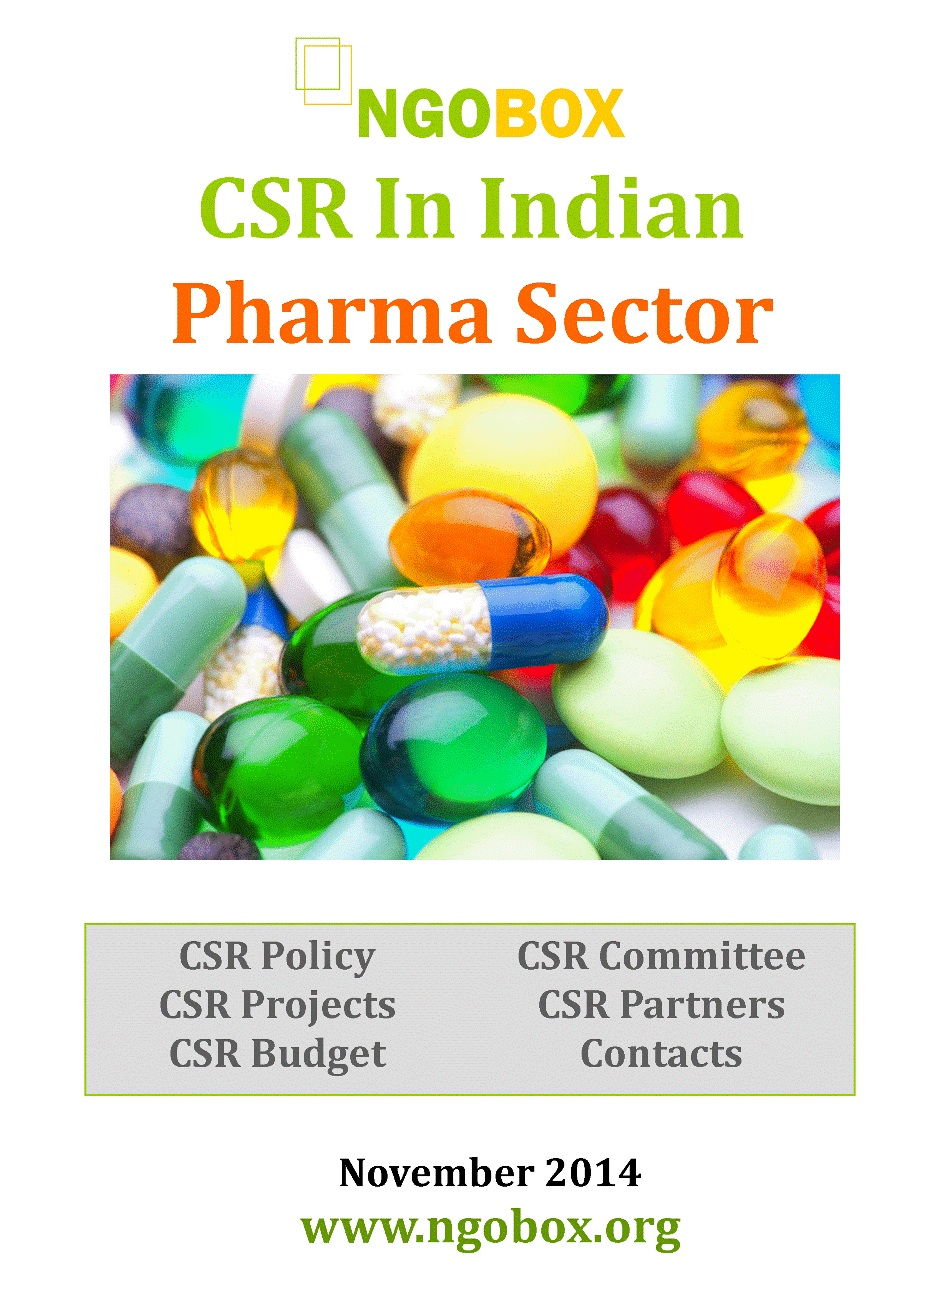 CSR in Indian Pharma Sector